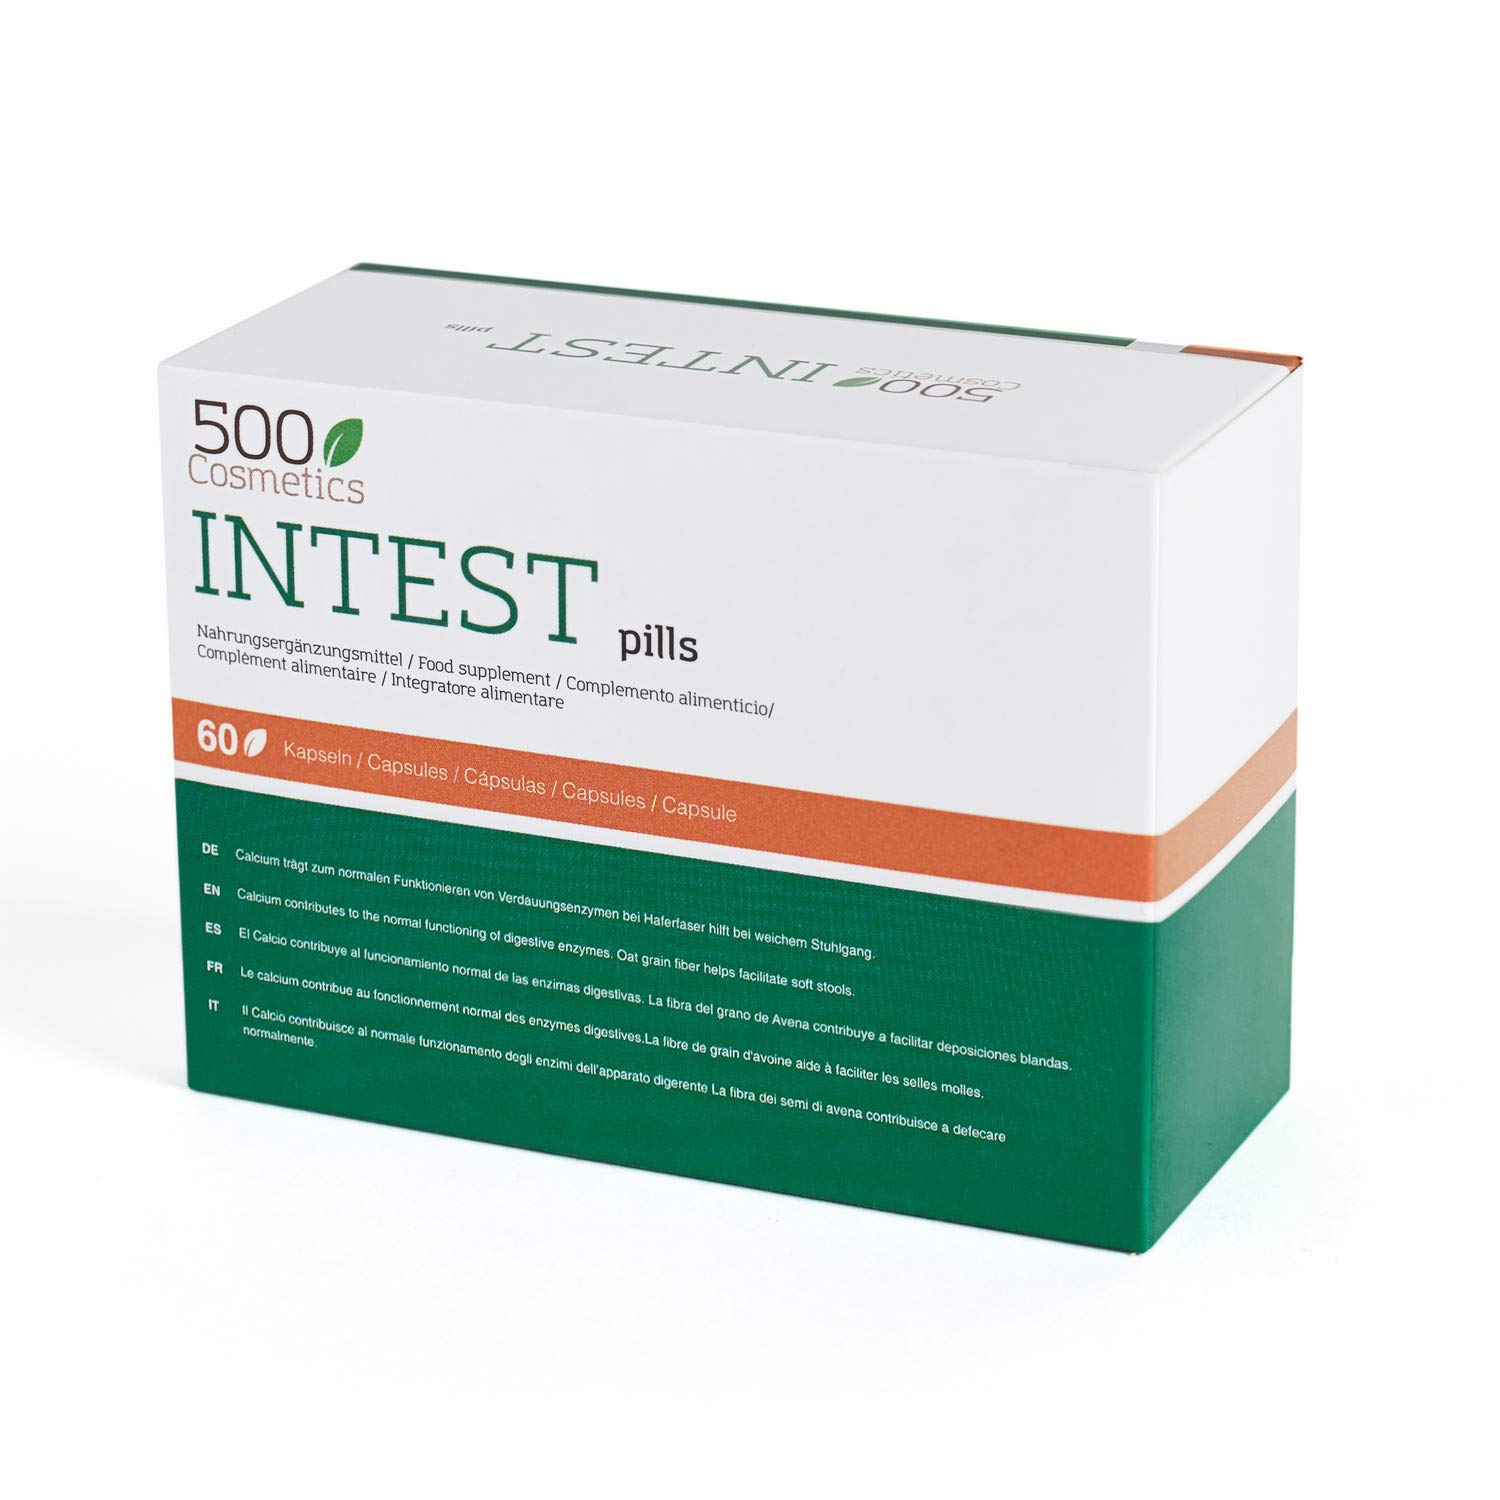 Amazon.com: 500Cosmetics Intest - Natural Capsules to ...